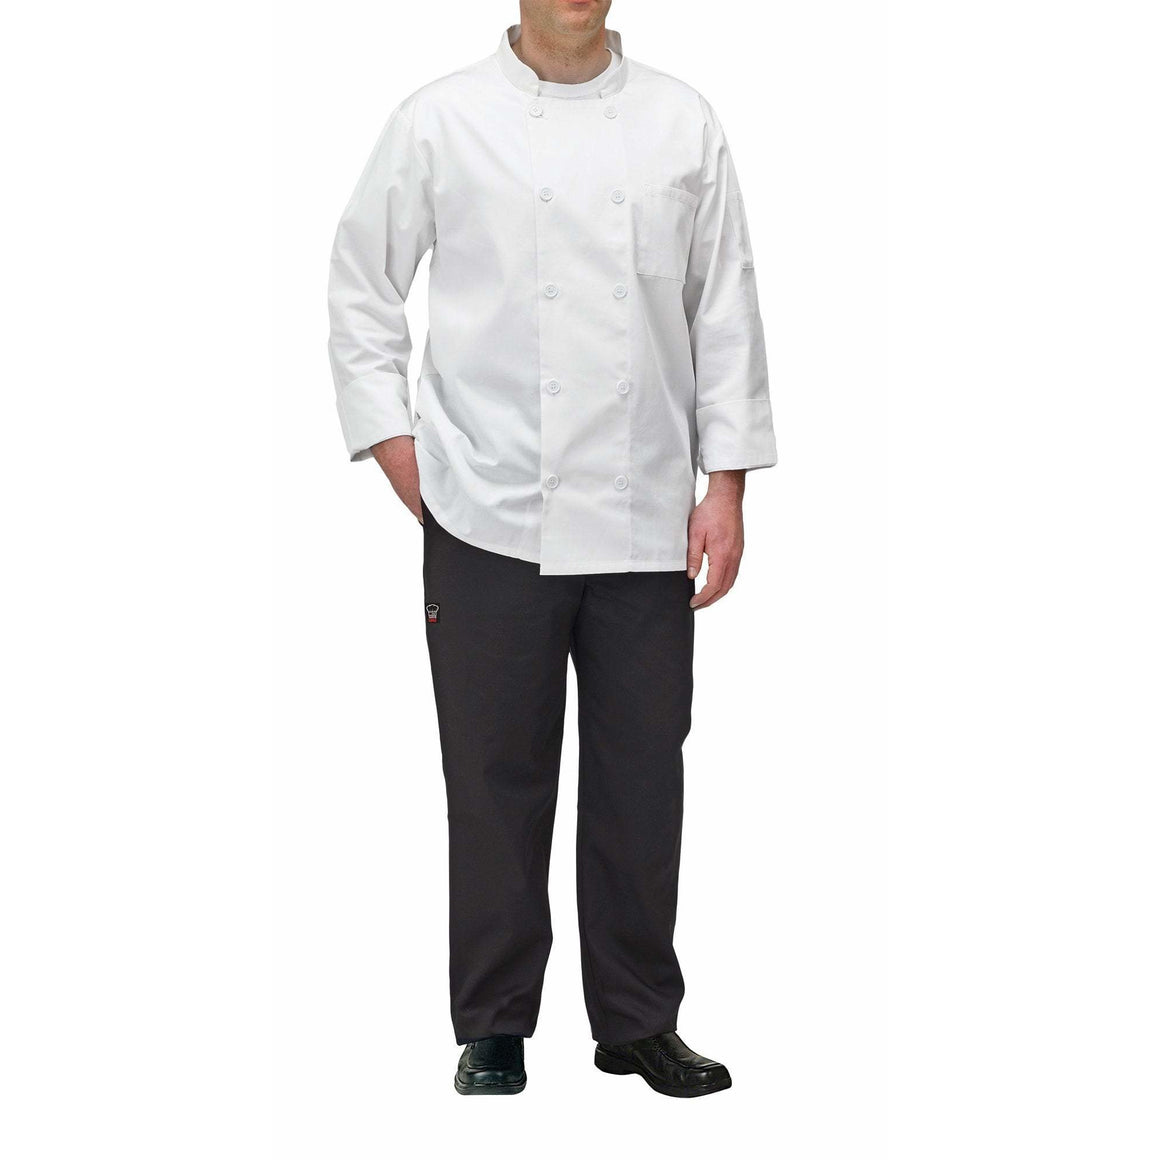 Winco - UNF-5WM - Chef jacket, white, M - Apparel